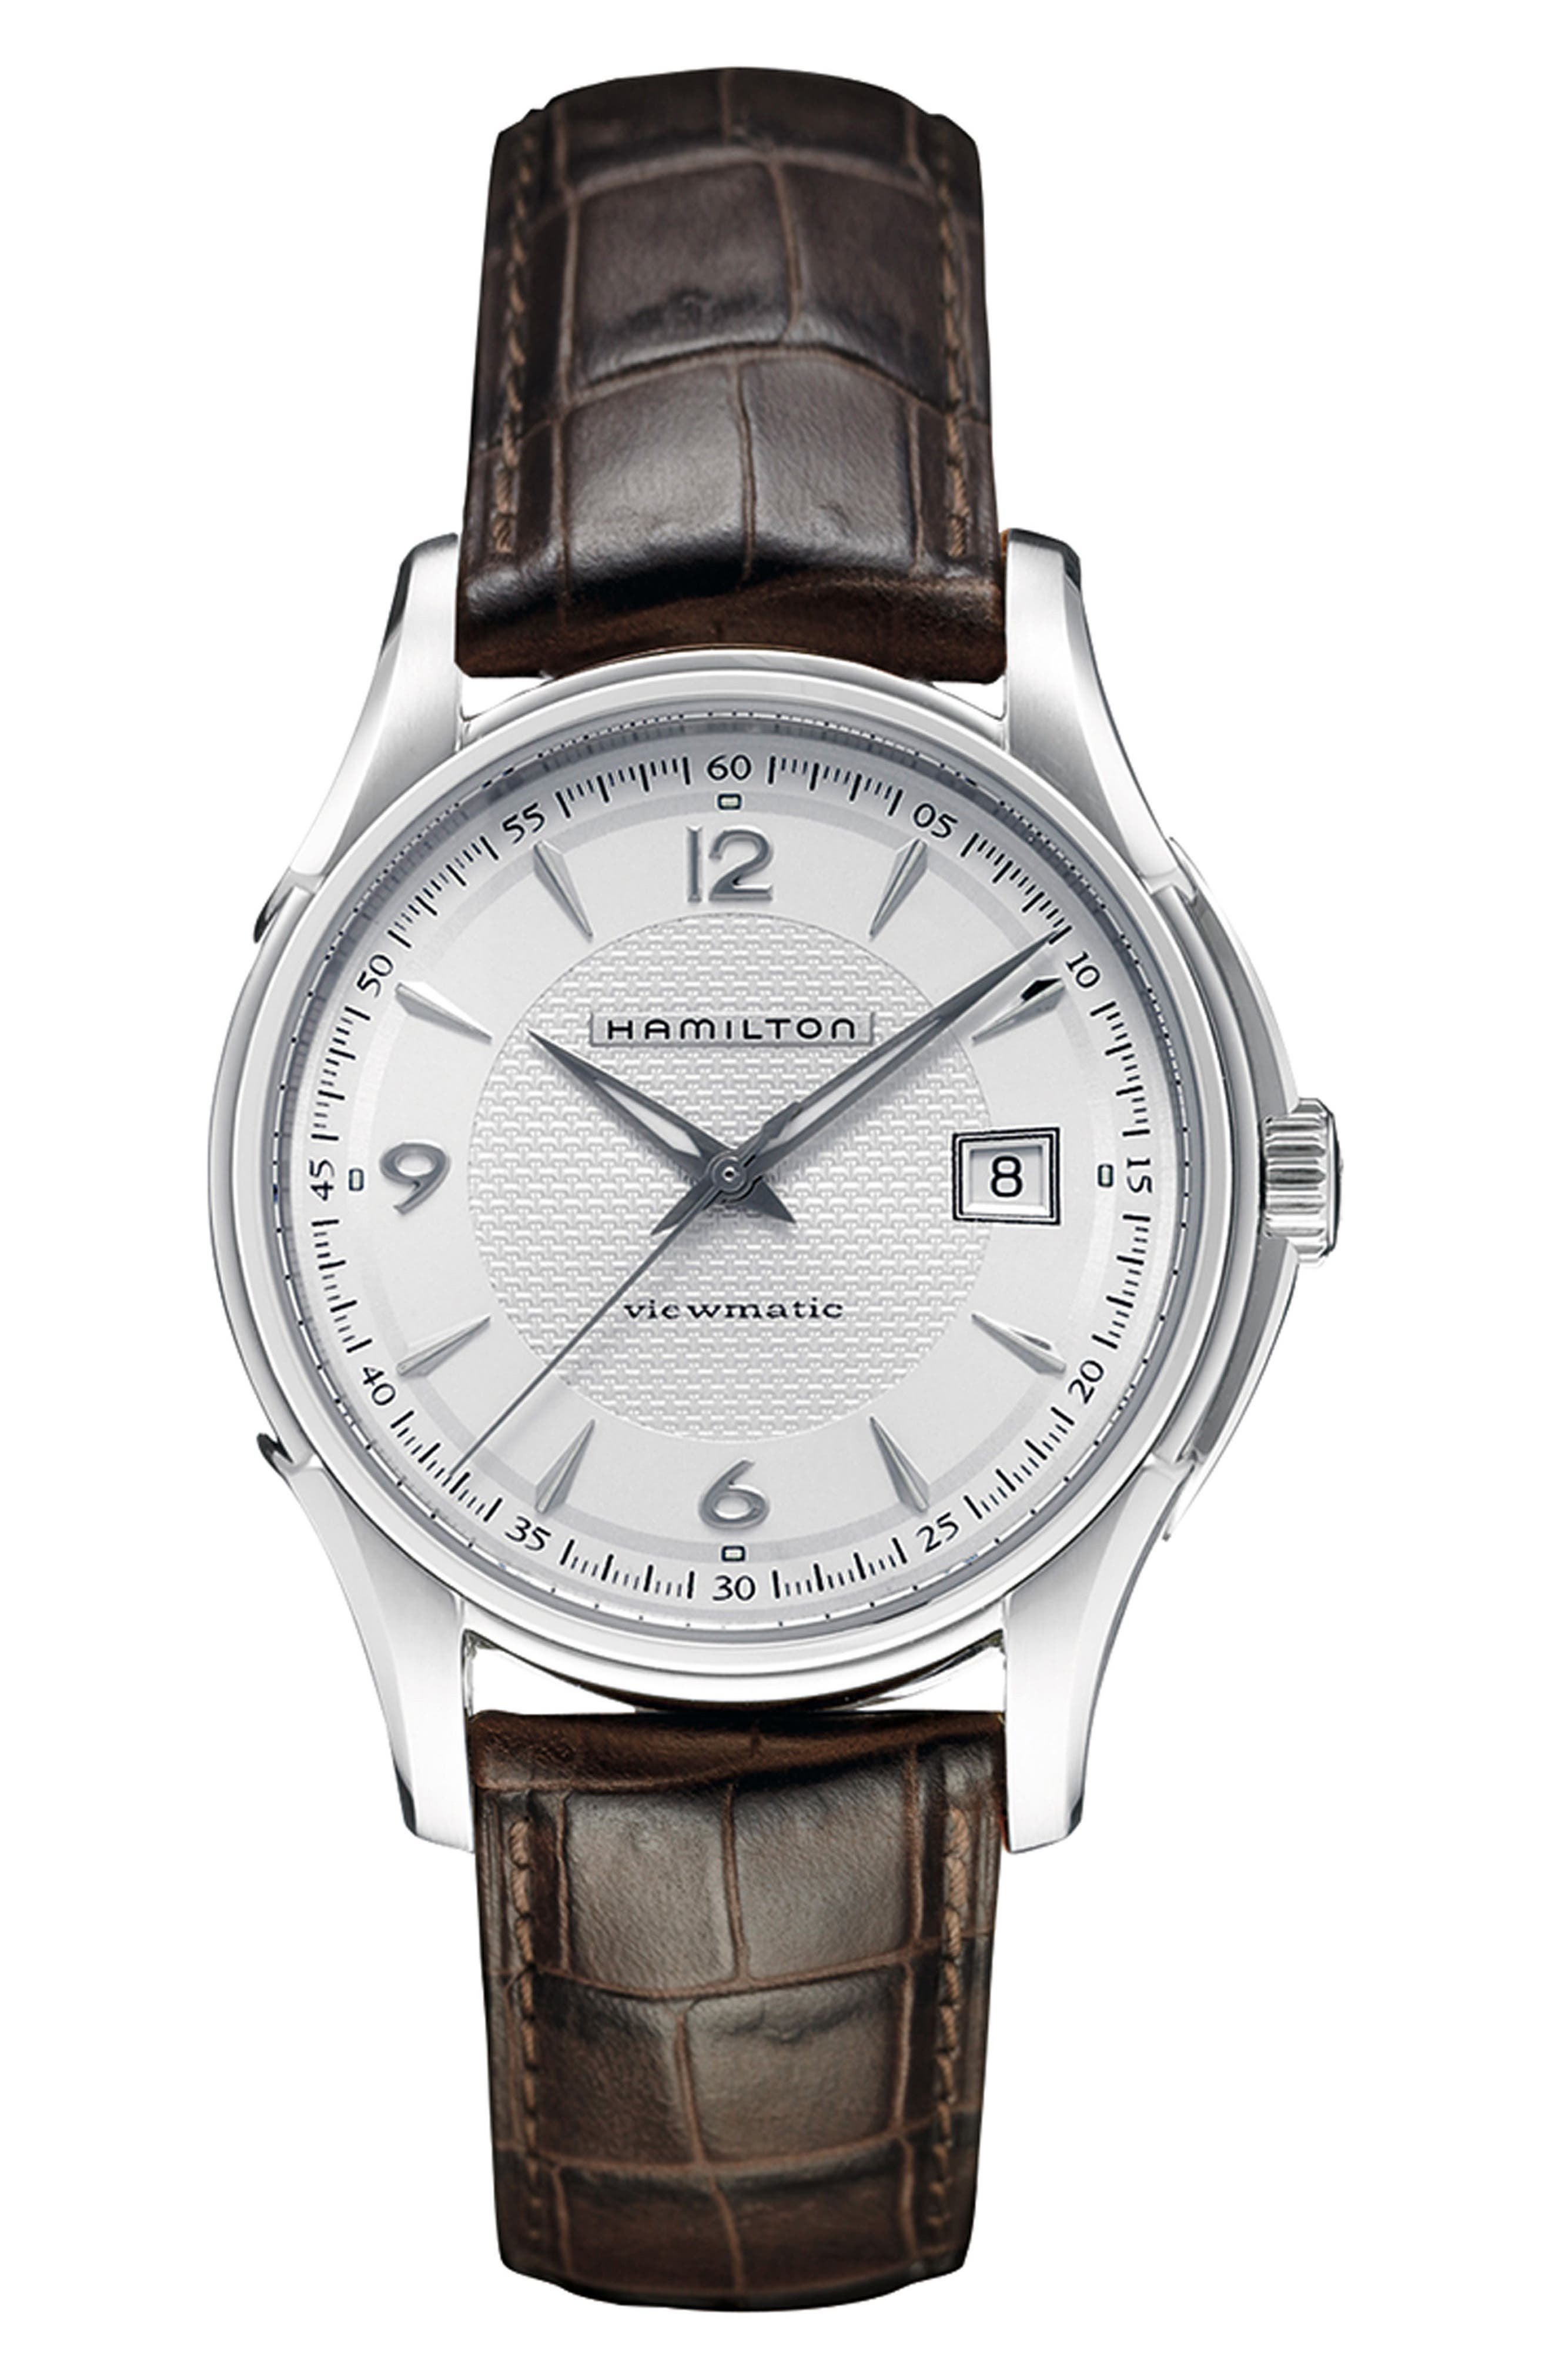 Jazzmaster Viewmatic Auto Leather Strap Watch